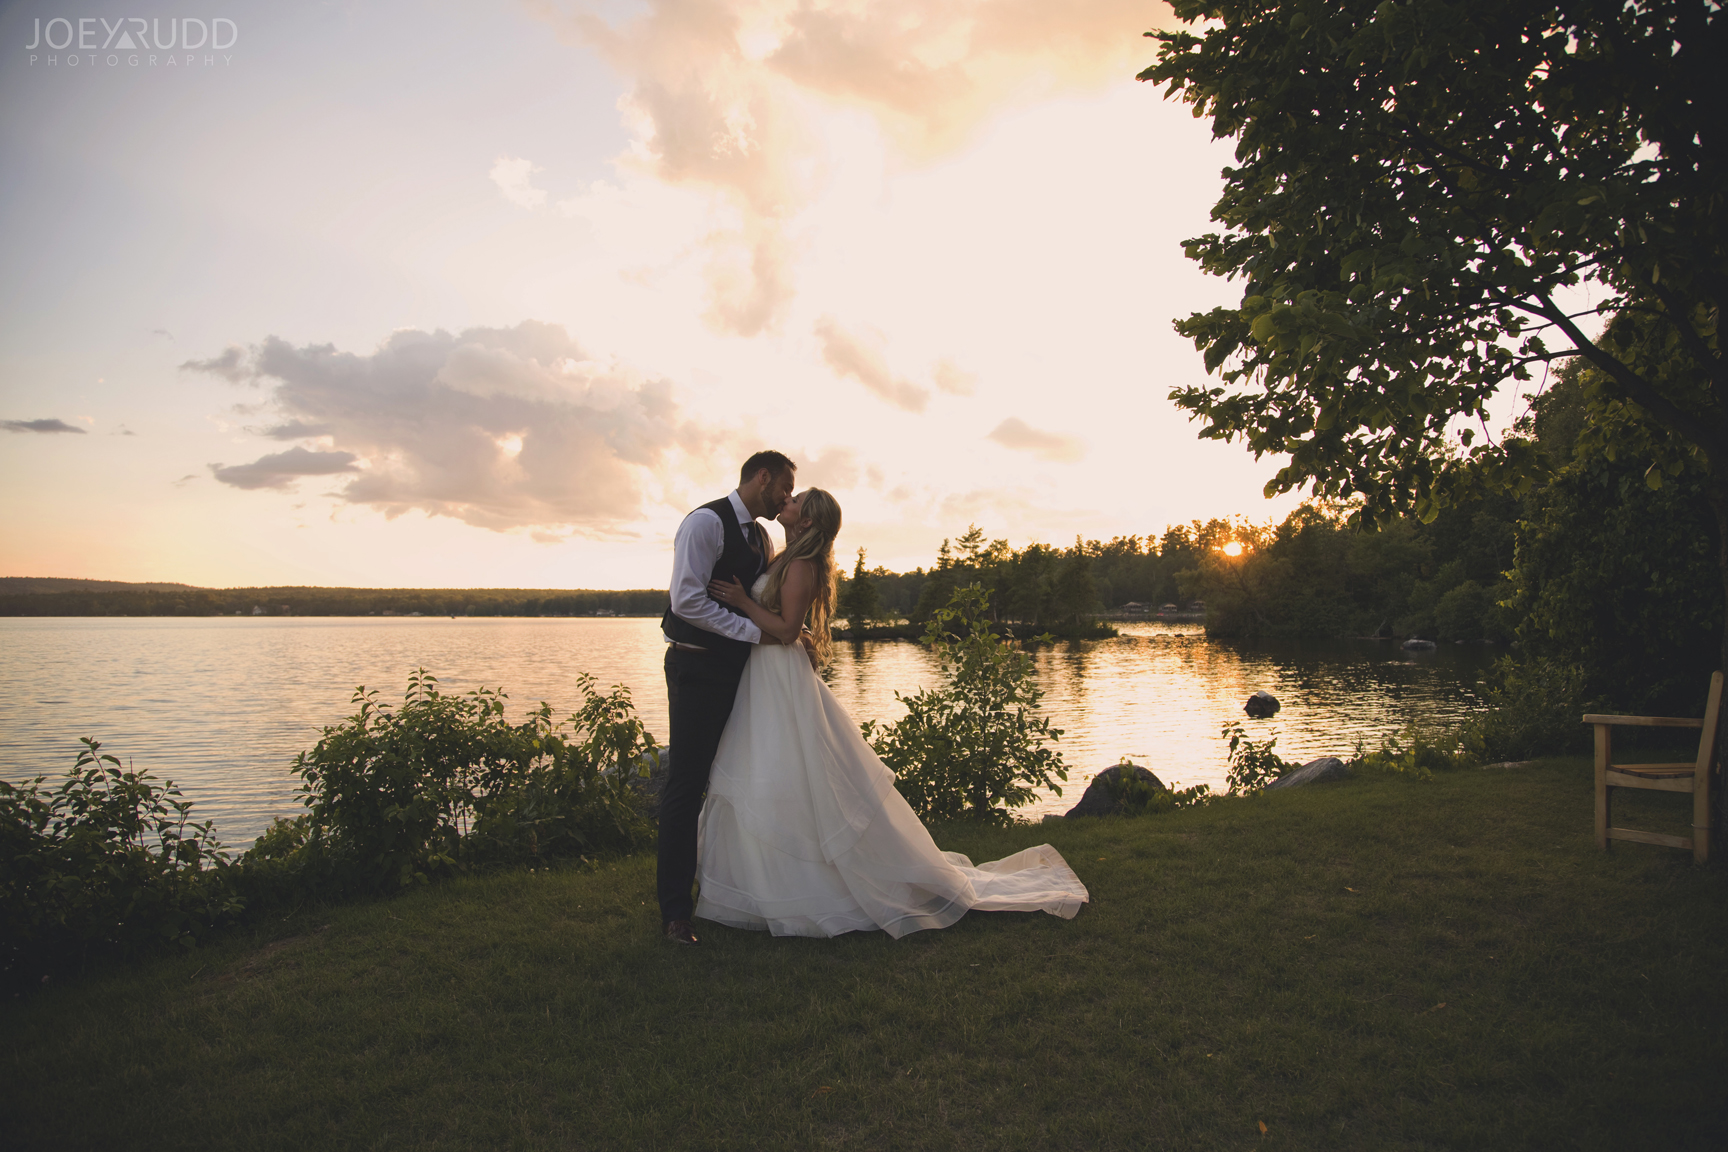 Calabogie Wedding at Barnet Park by Ottawa Wedding Photographer Joey Rudd Photography Sunset Portrait